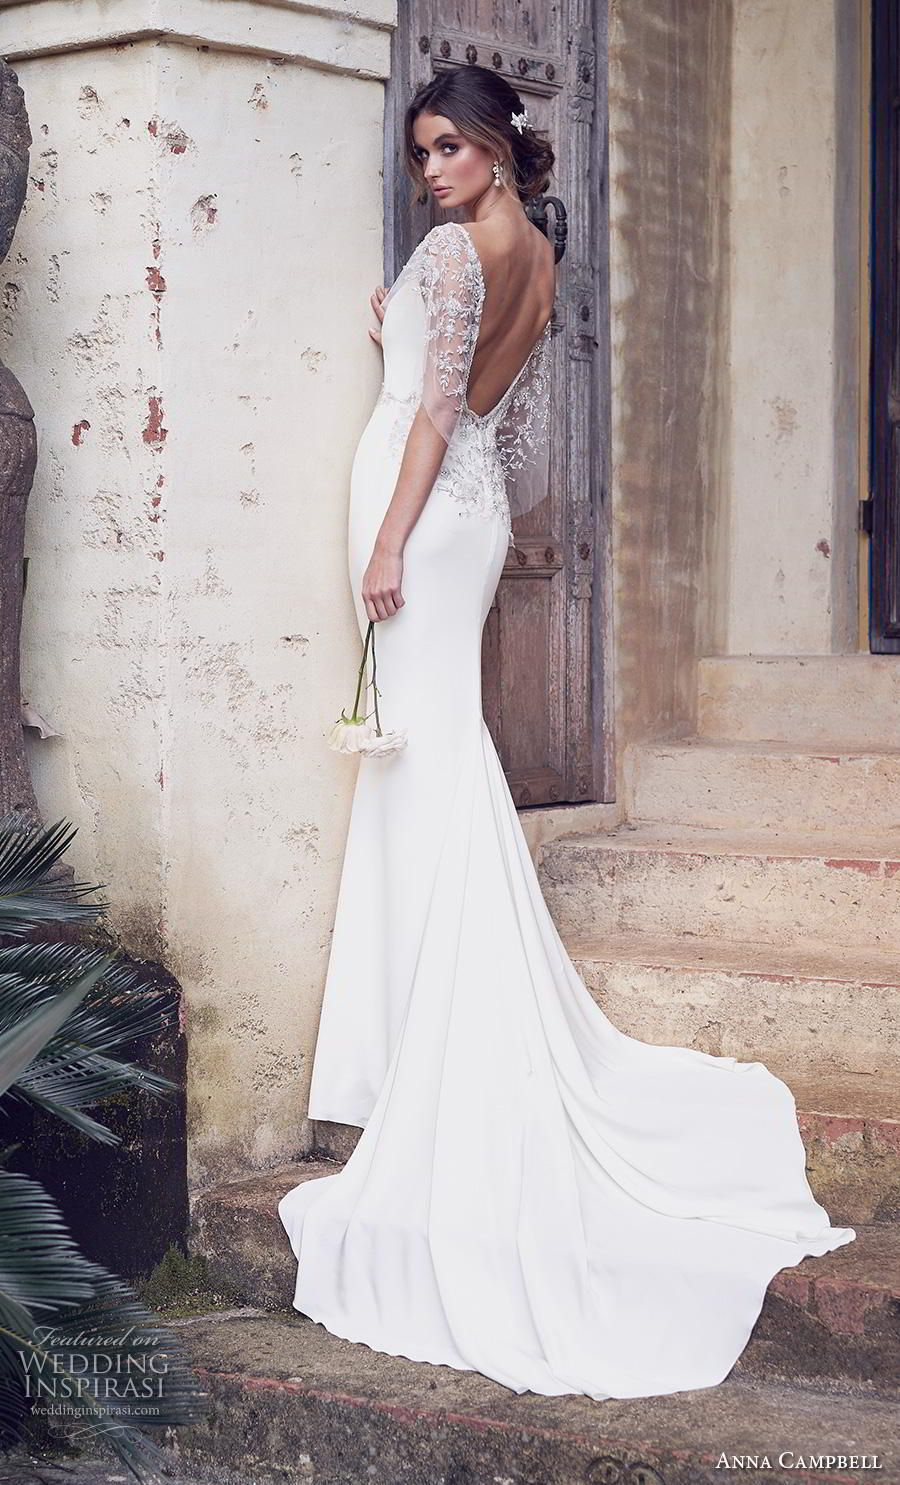 59c4ac25b545 anna campbell 2019 bridal butterfly sleeves diamond neck simple embellished  waist minimalist elegant fit and flare wedding dress backless scoop back  chapel ...